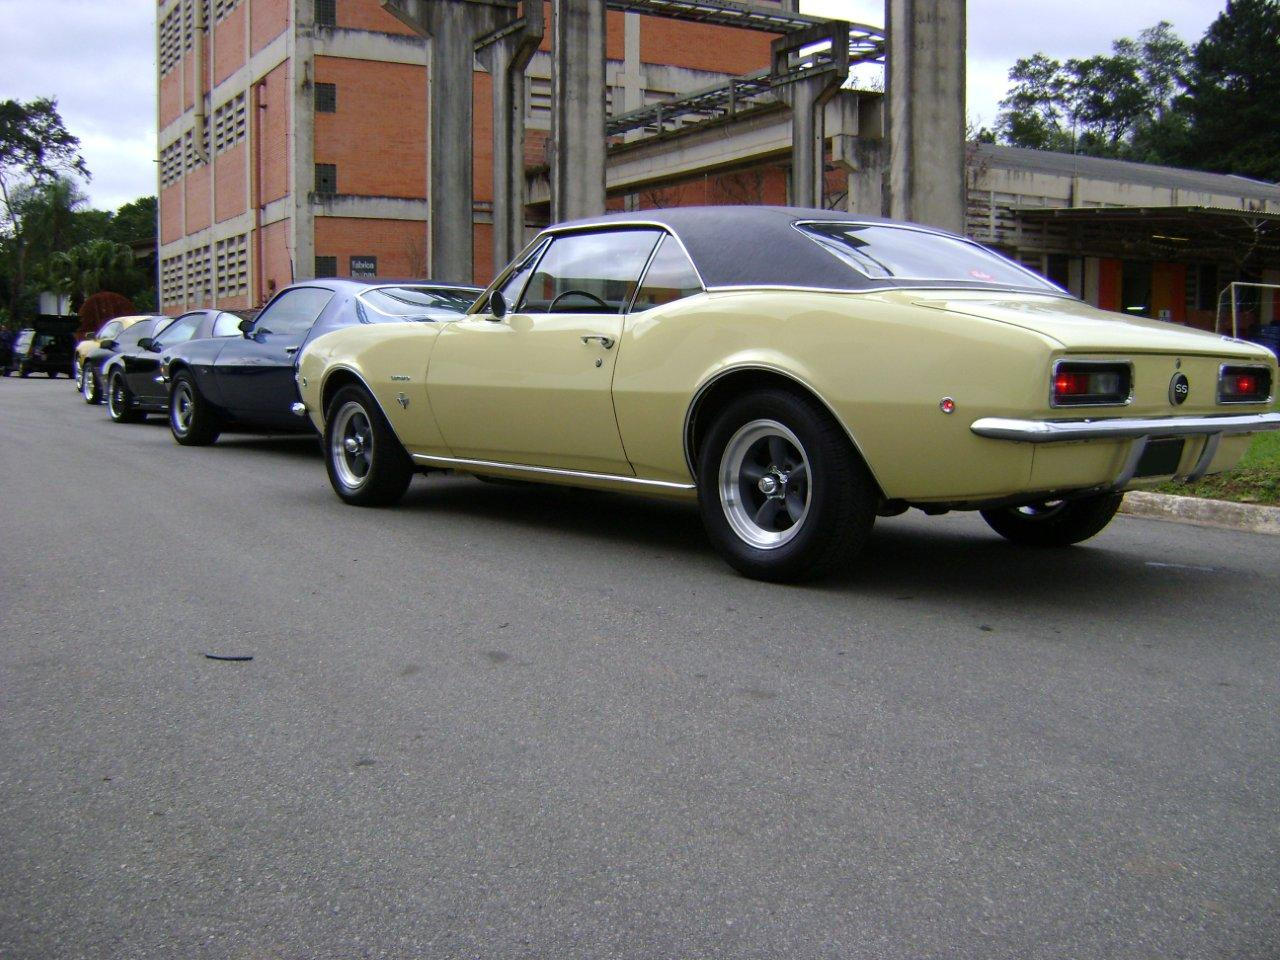 chevy_camaro_67_butternut_yellow_DSC00652.jpg